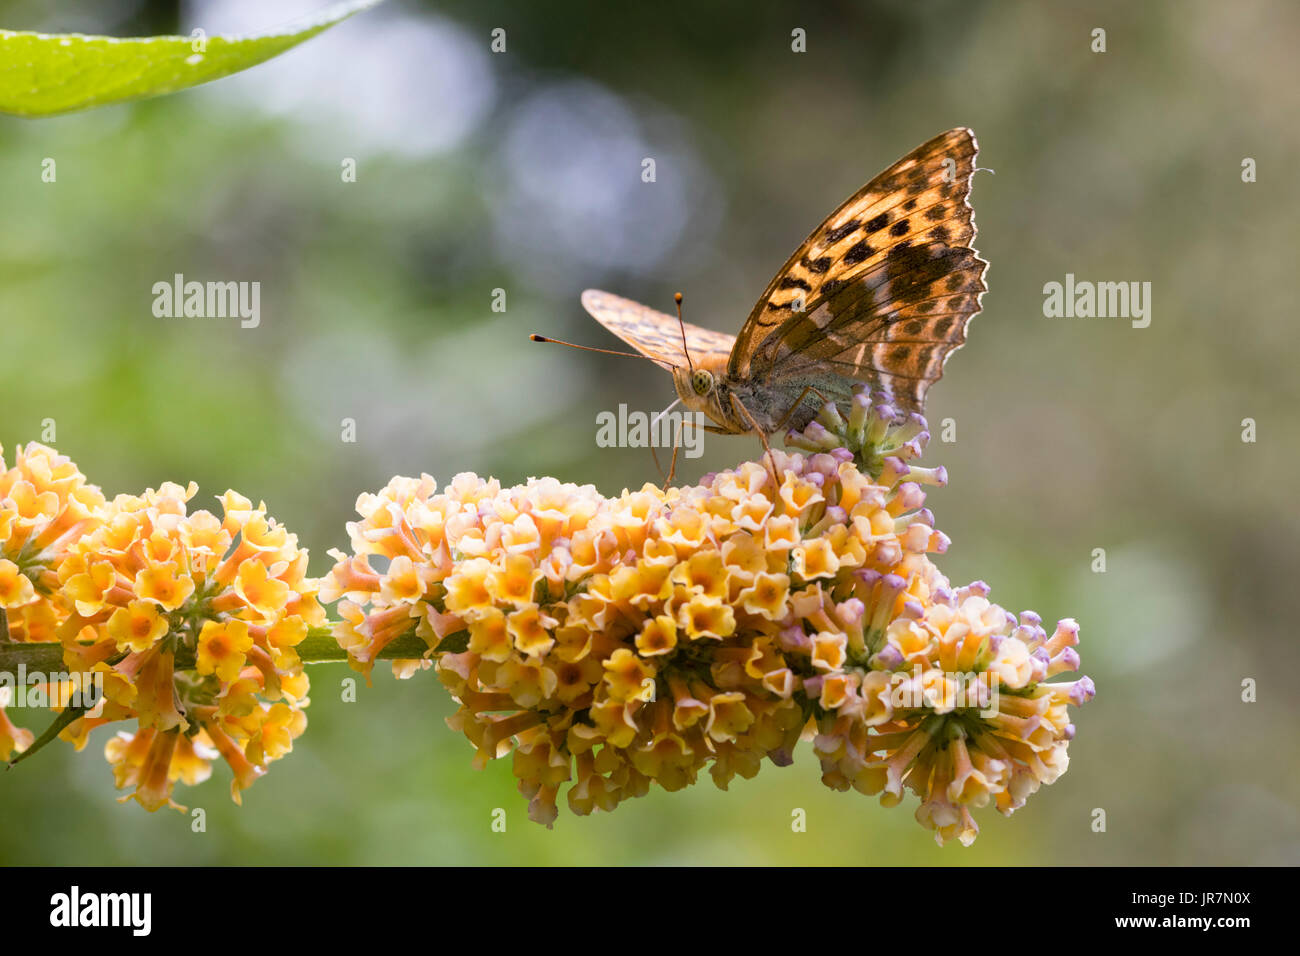 Silver washed fritillary butterfly, Argynnis paphia, feeding on the globular flower heads of the hardy hybrid shrub, Stock Photo